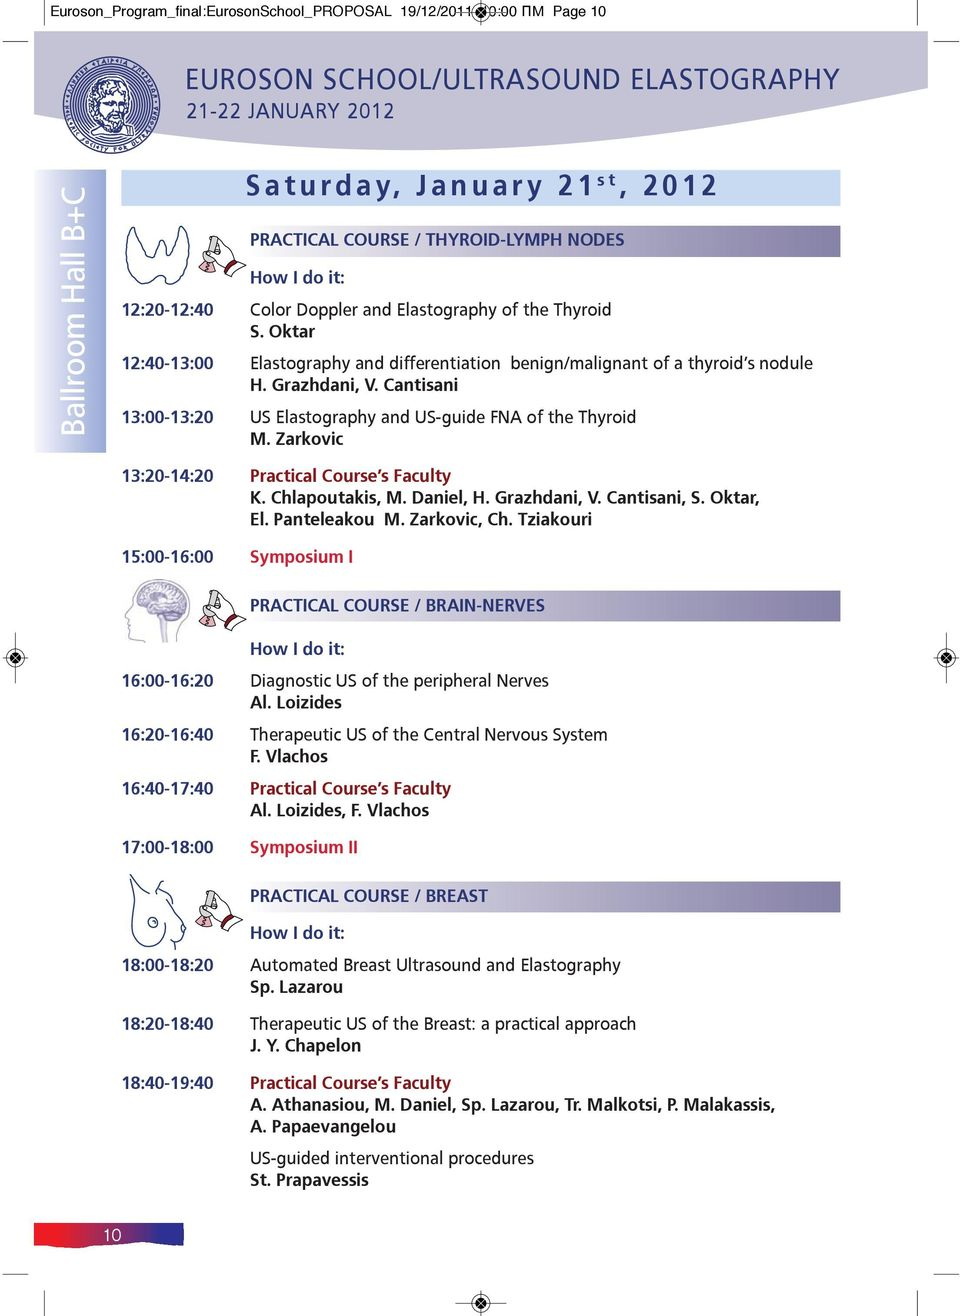 Cantisani 13:00-13:20 US Elastography and US-guide FNA of the Thyroid M. Zarkovic 13:20-14:20 Practical Course s Faculty K. Chlapoutakis, M. Daniel, H. Grazhdani, V. Cantisani, S. Oktar, El.